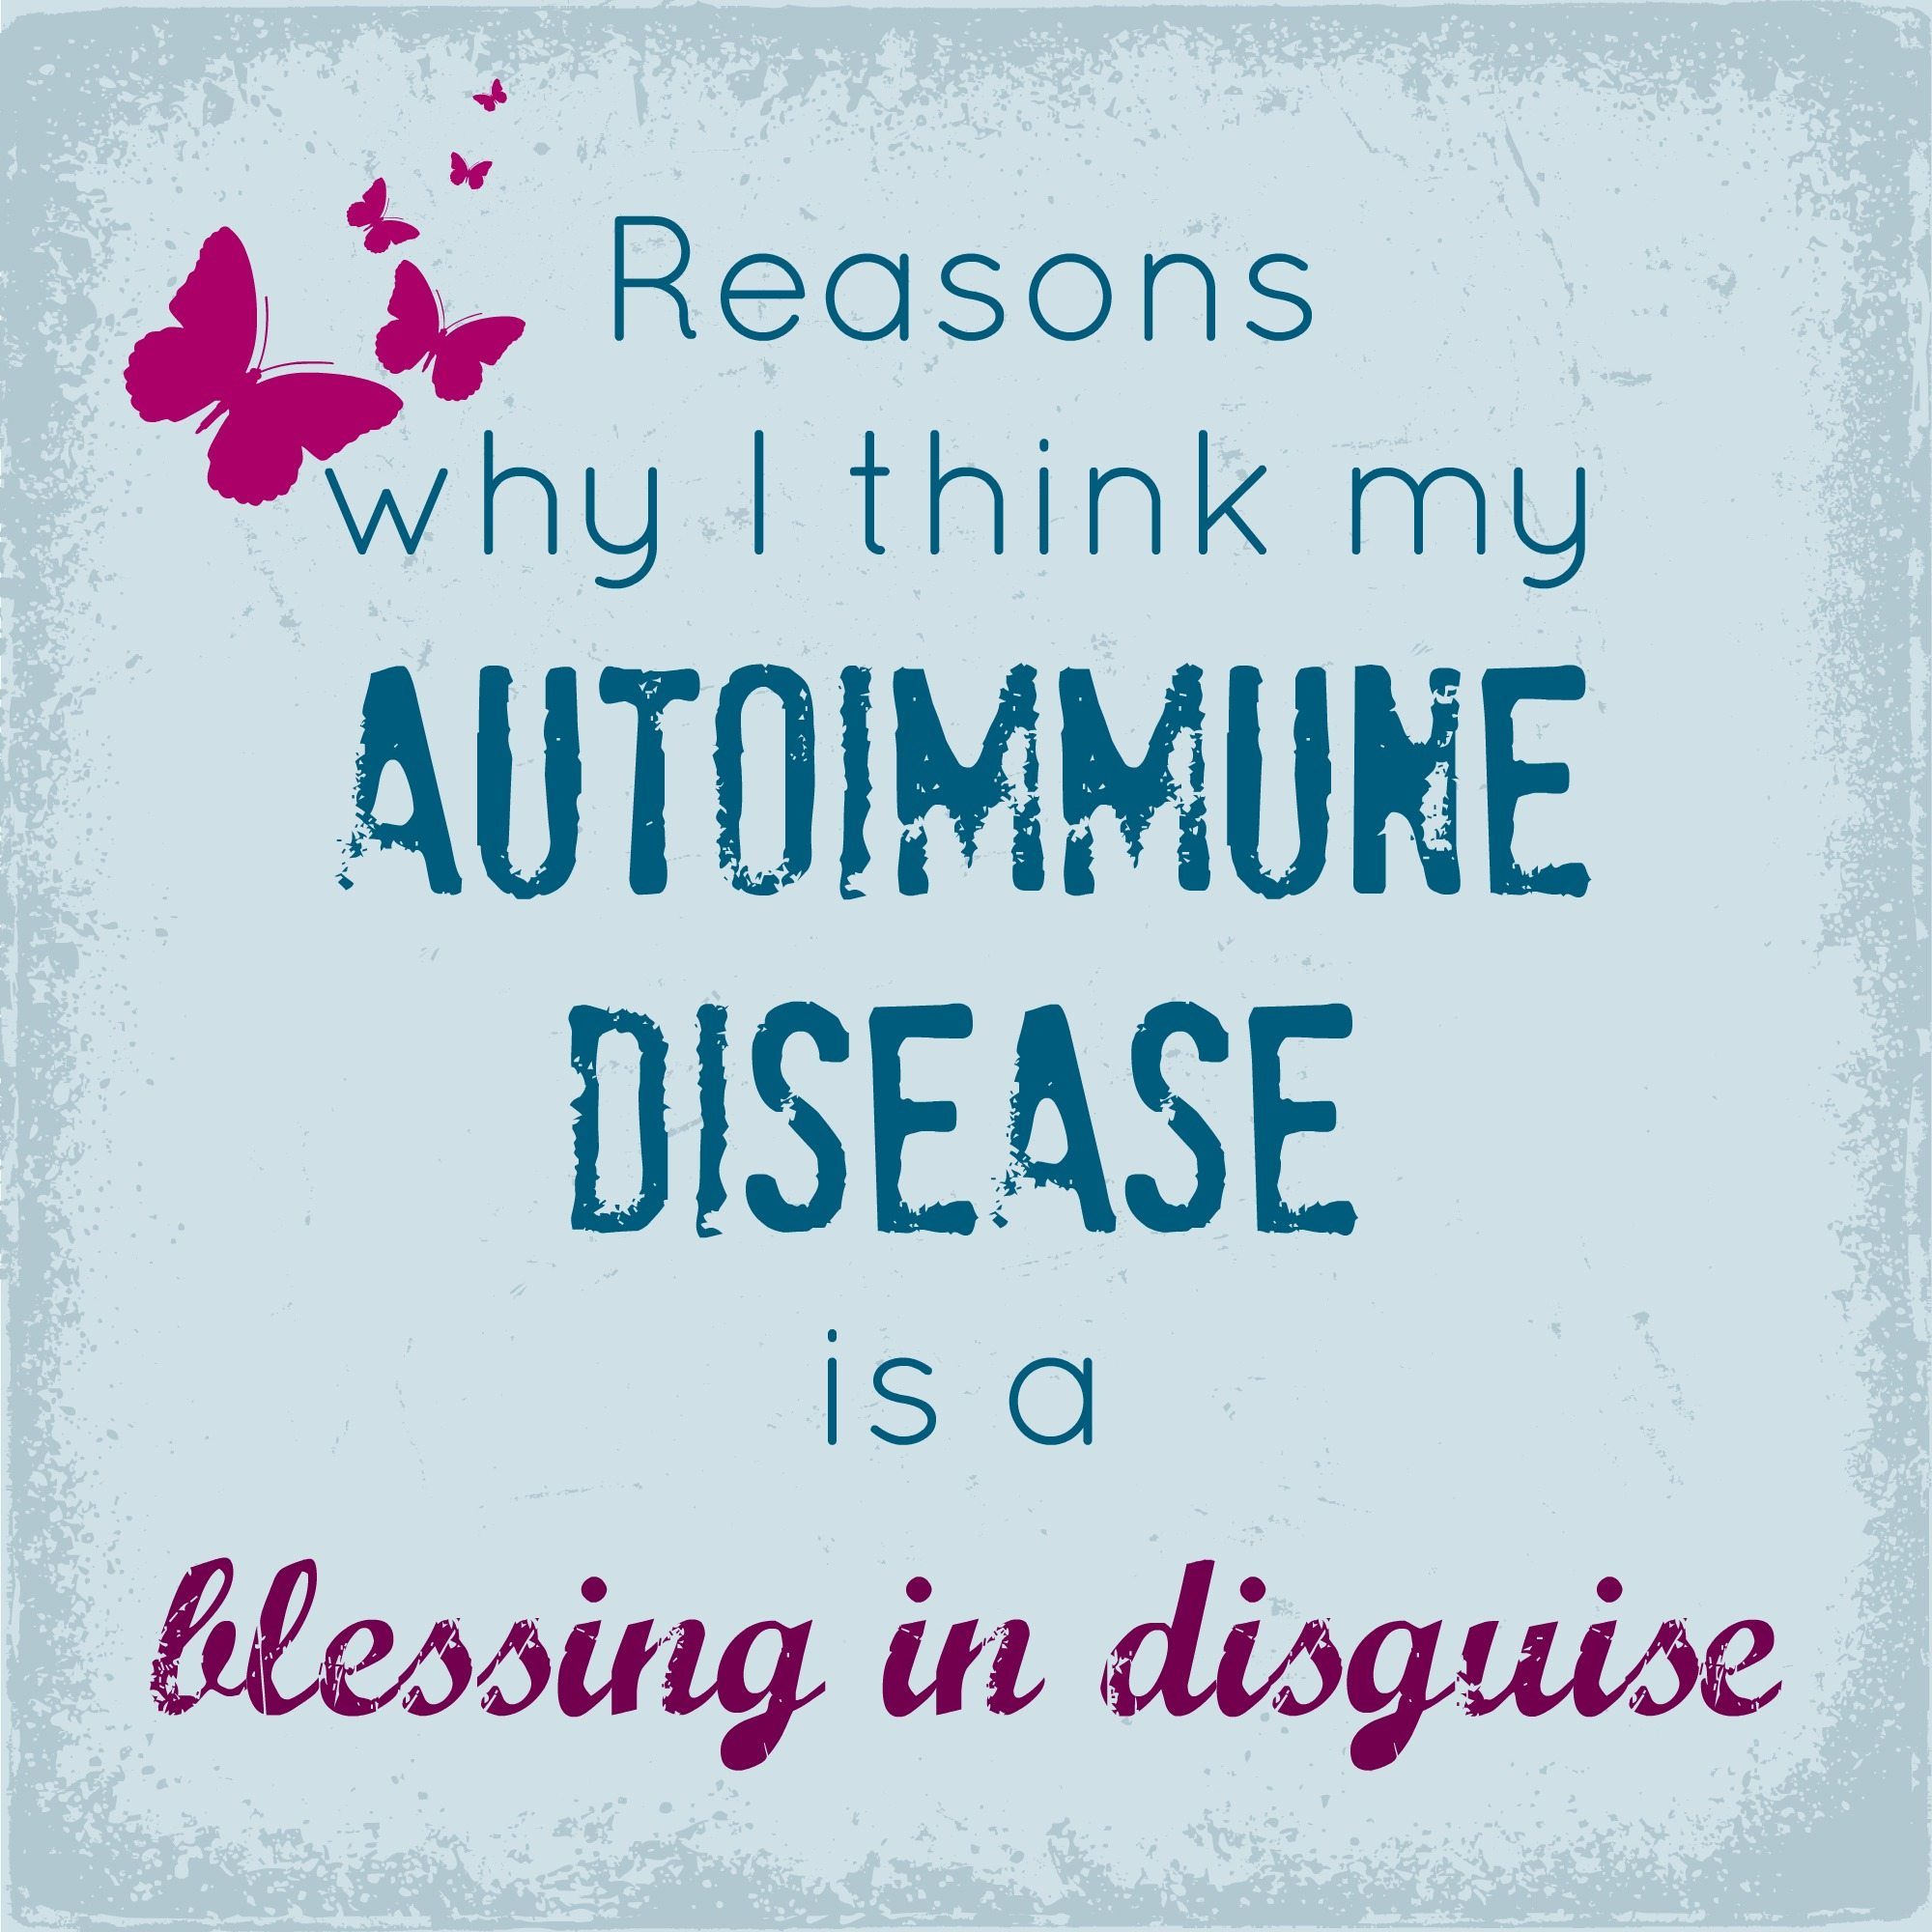 Reasons why my AutoImmune disease is a blessing in disguise